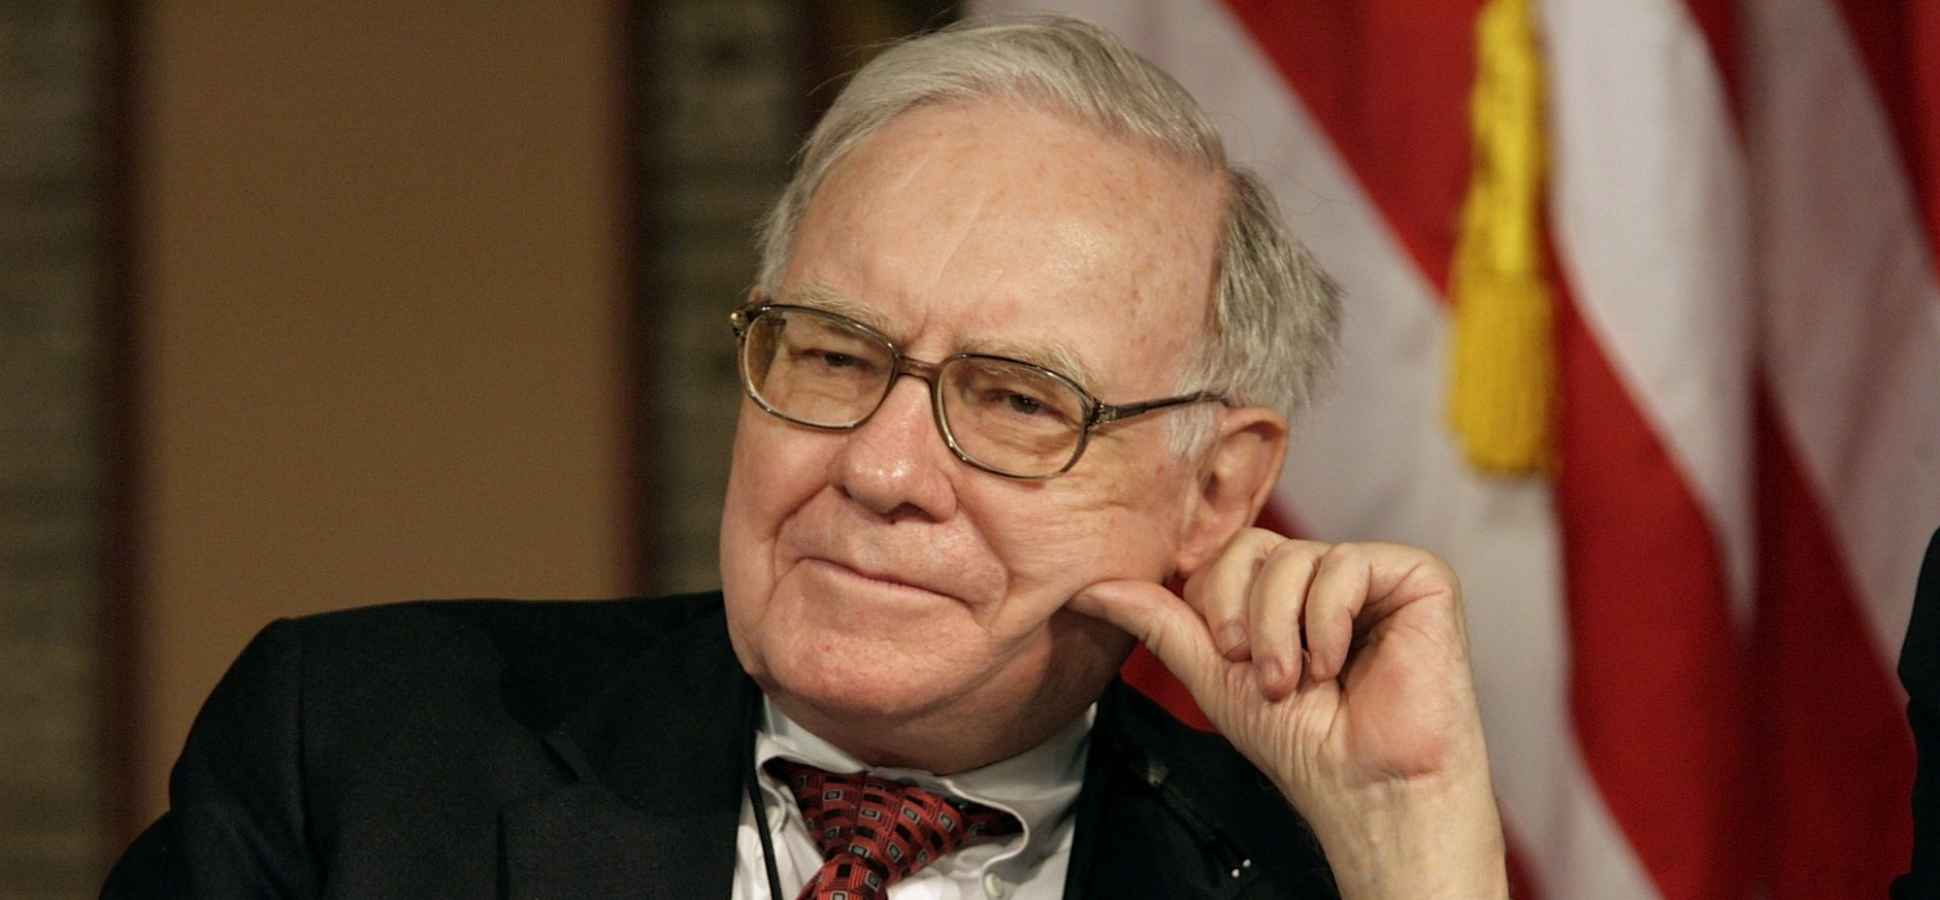 5 Little-Known Facts About Warren Buffett That Will Surprise You